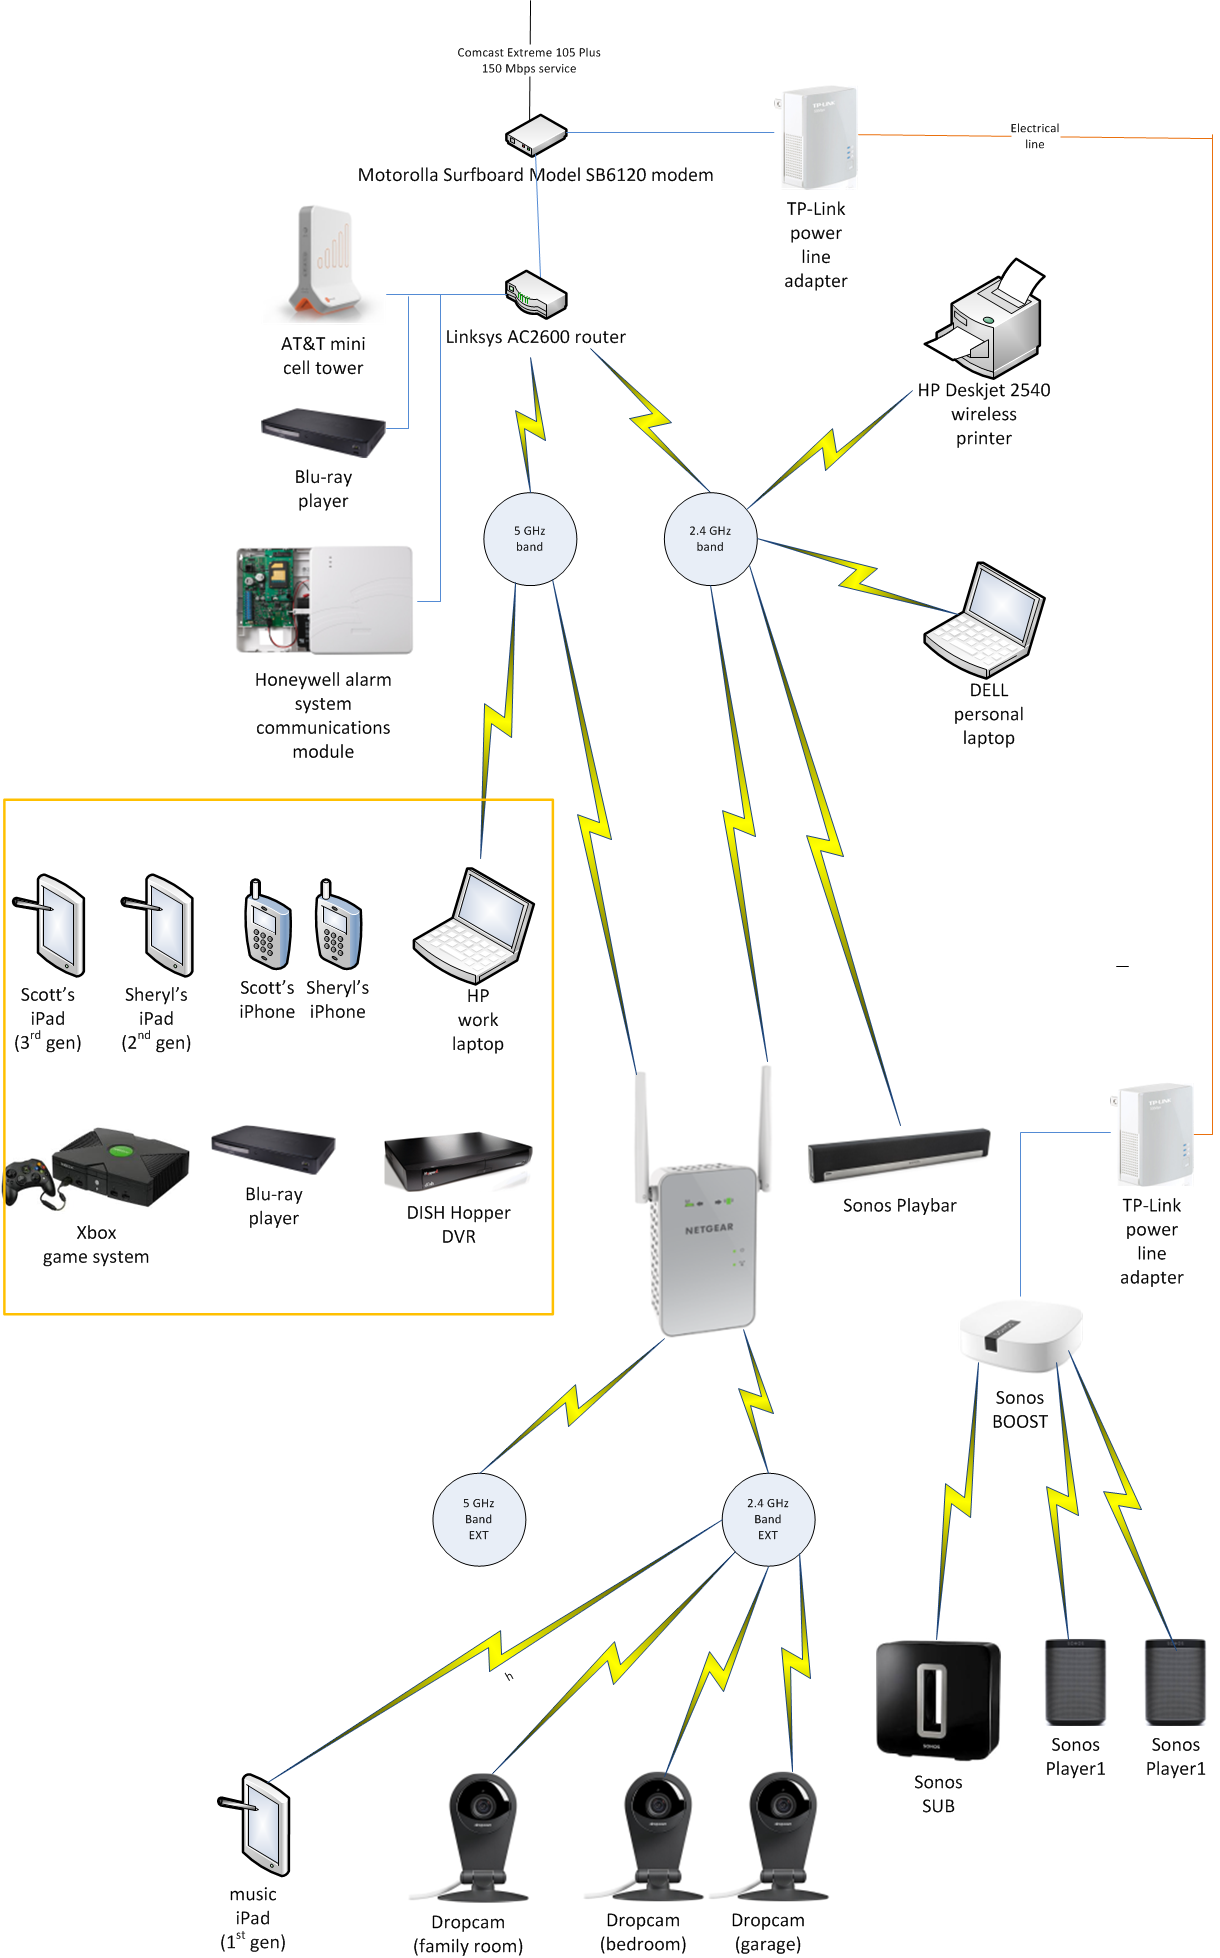 How My Home Network Has Changed Over The Years - It is Alive ... Home Network Schematic on home network cable, home network map, home network configuration, home network block diagram, home network wireless internet, home wi-fi setup diagram, home network cabling, home network wiring diagram, home network hardware, home network server, home network diagram examples, home lan network, home network system, home network software, home network documentation, home network wiring guide, home network cabinet, home network box, home network interface, home network design,